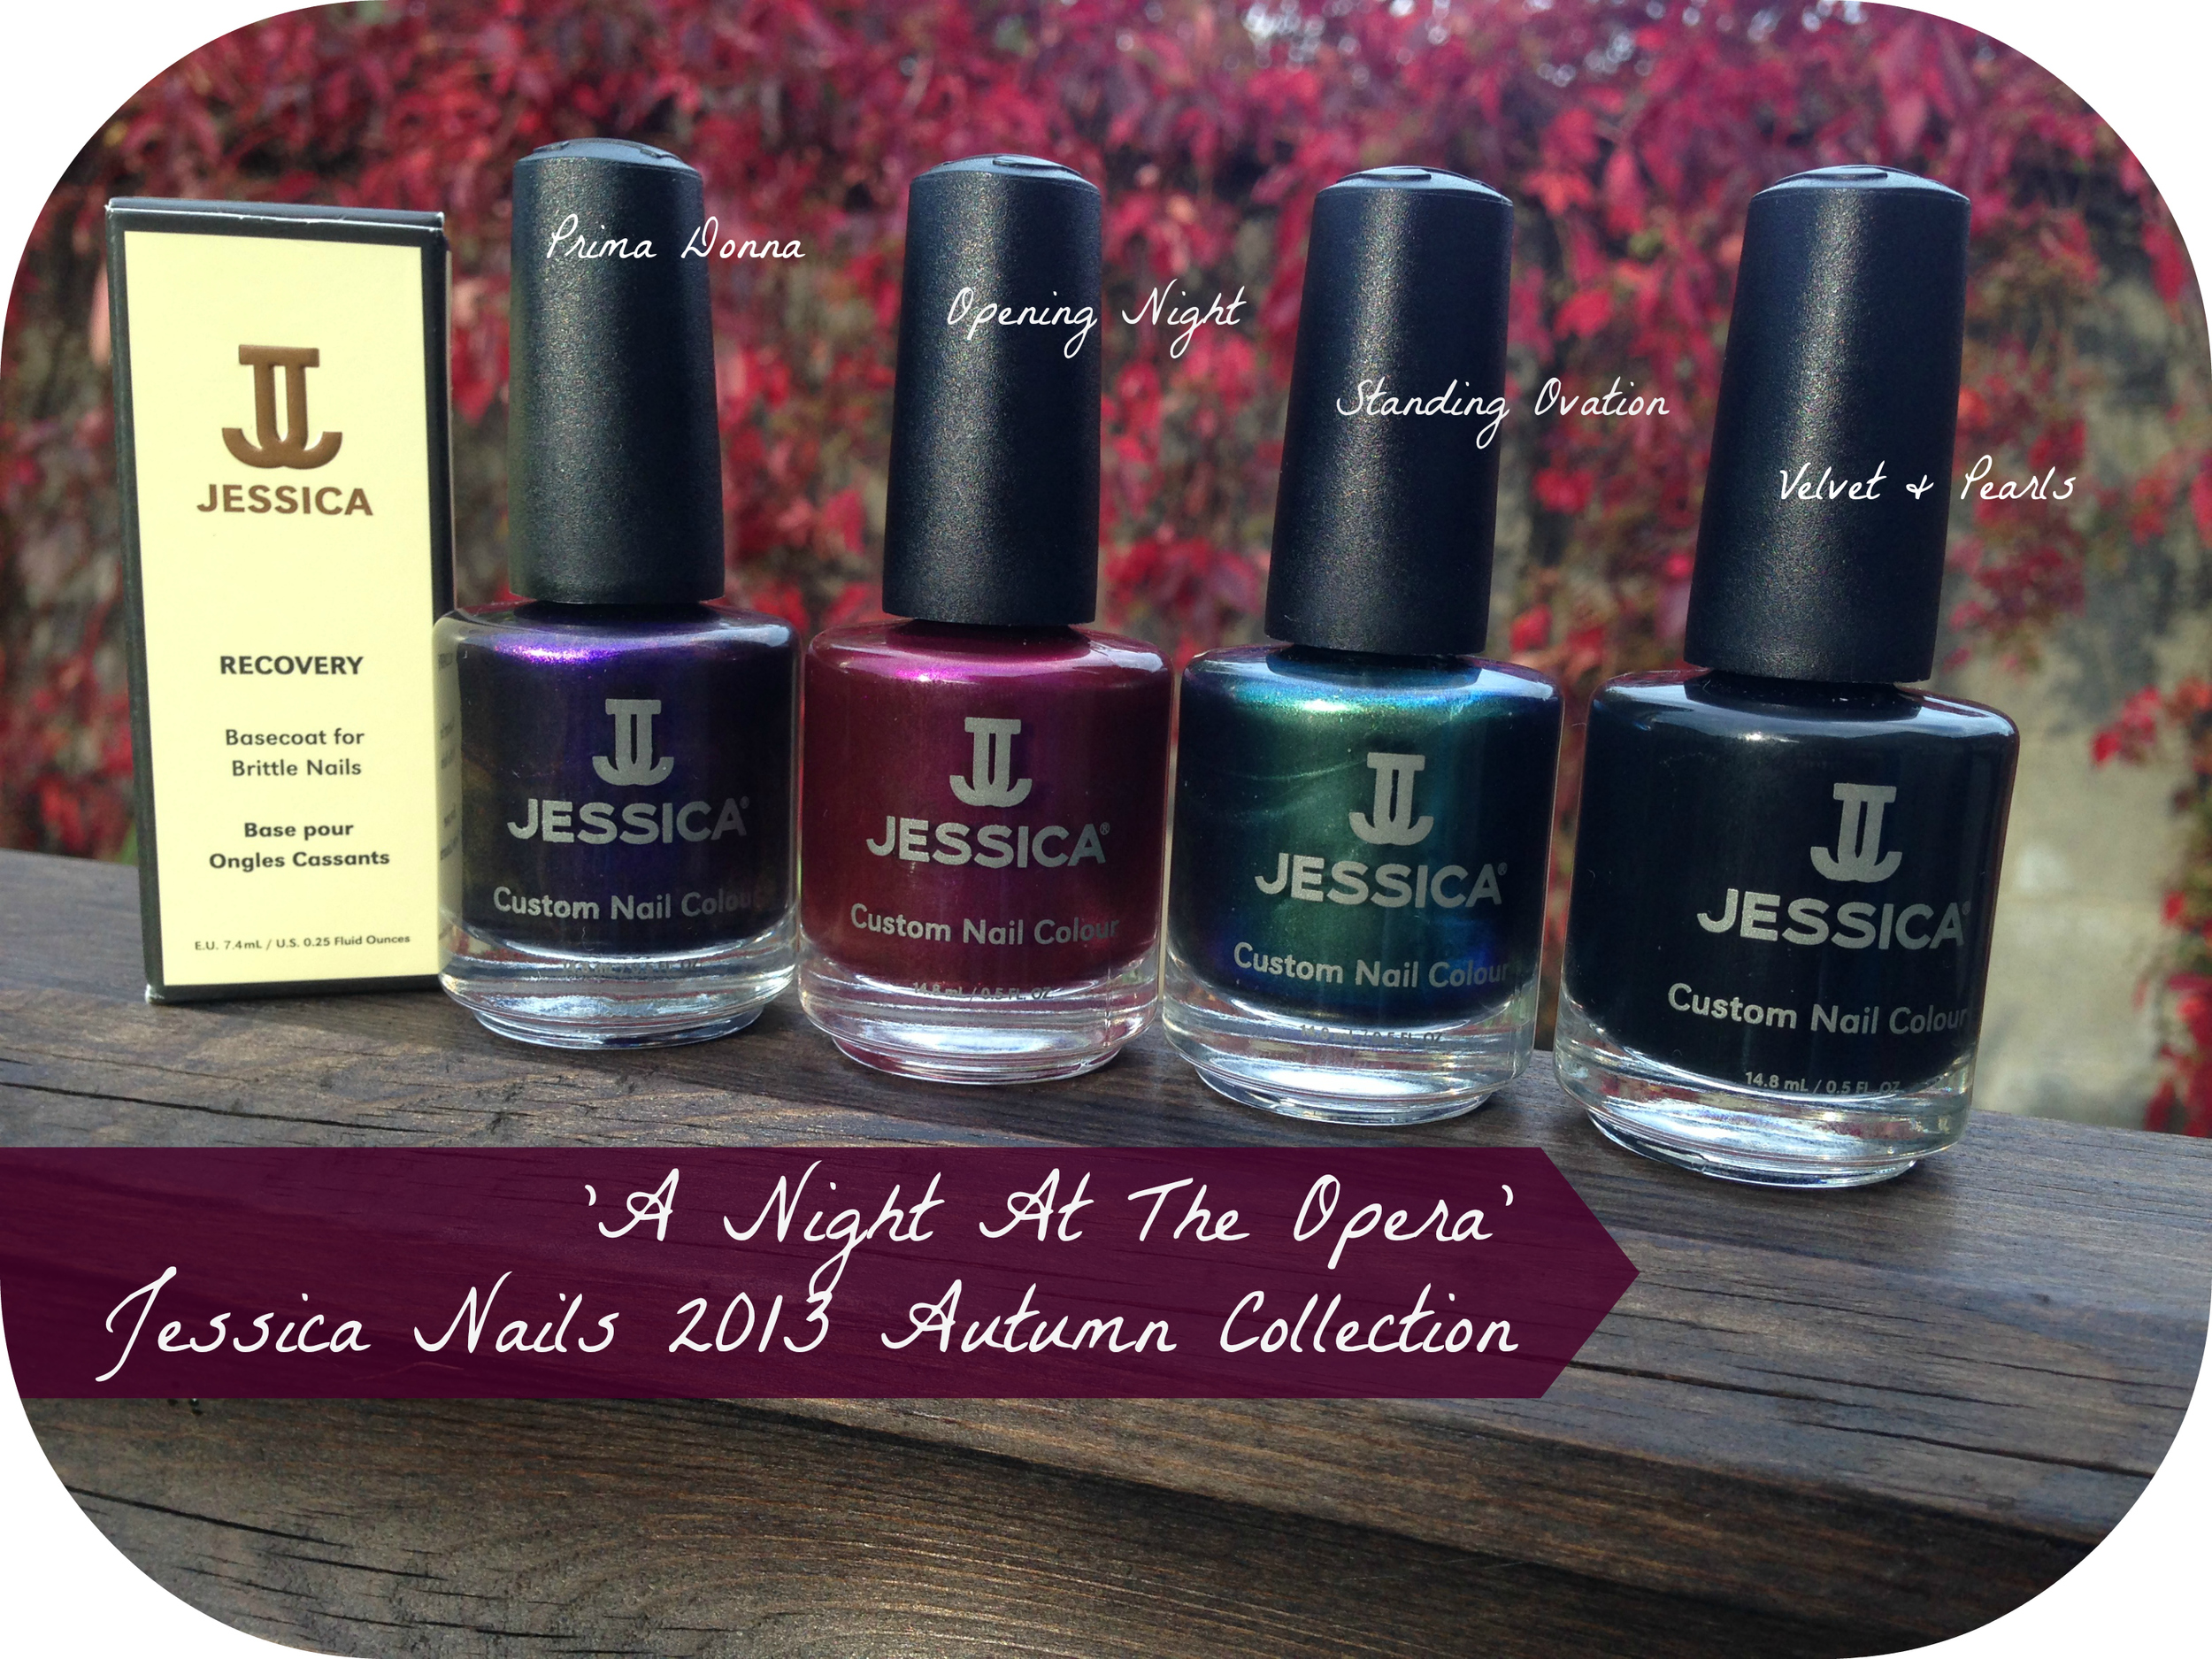 'A Night At The Opera' Jessica Nails Autumn 2013 Collection Review